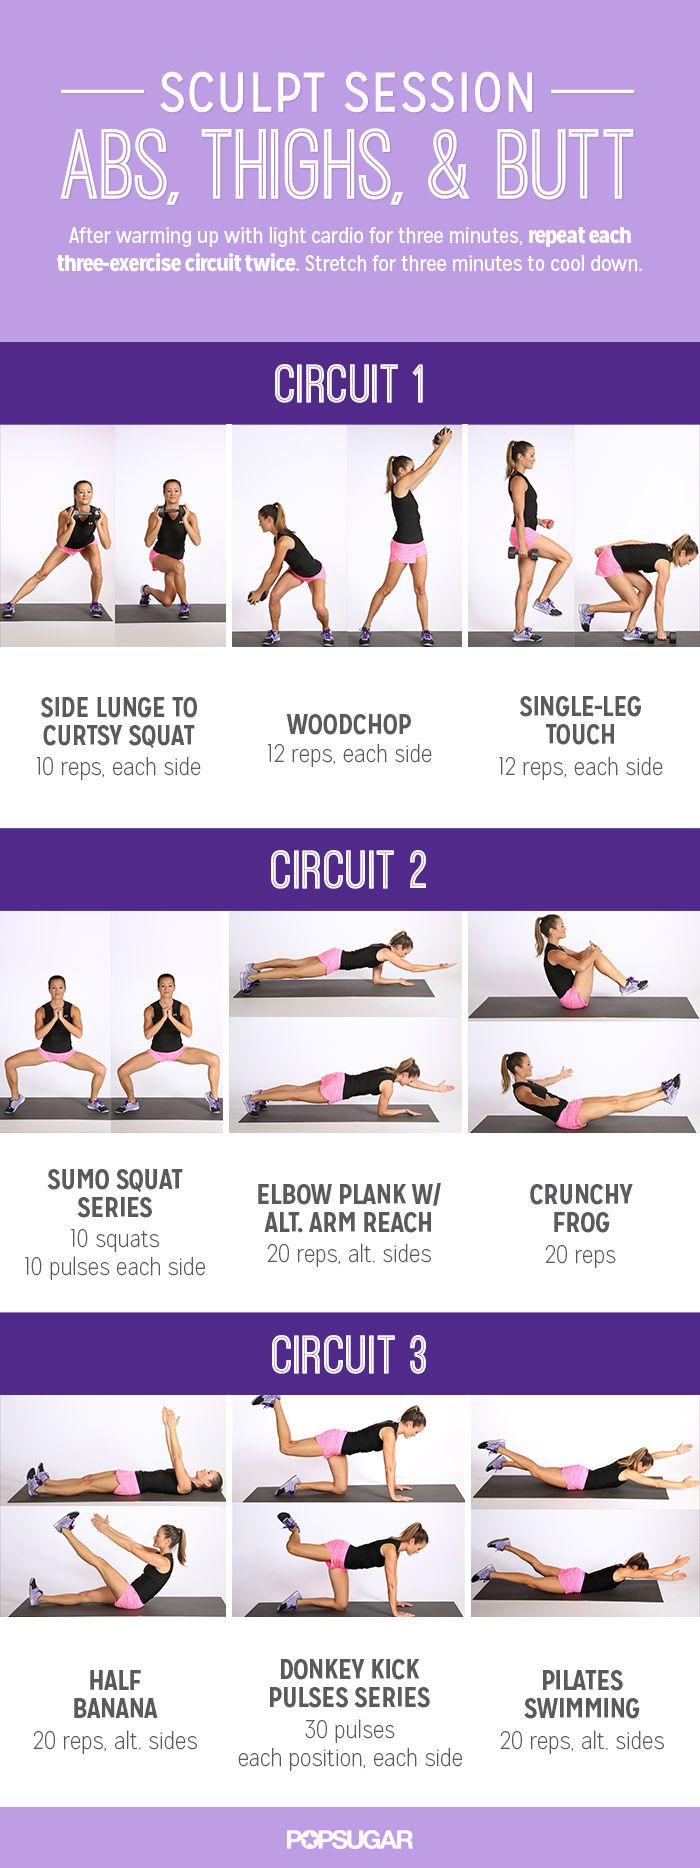 321 best Home Gym images on Pinterest | Healthy living, Exercise ...